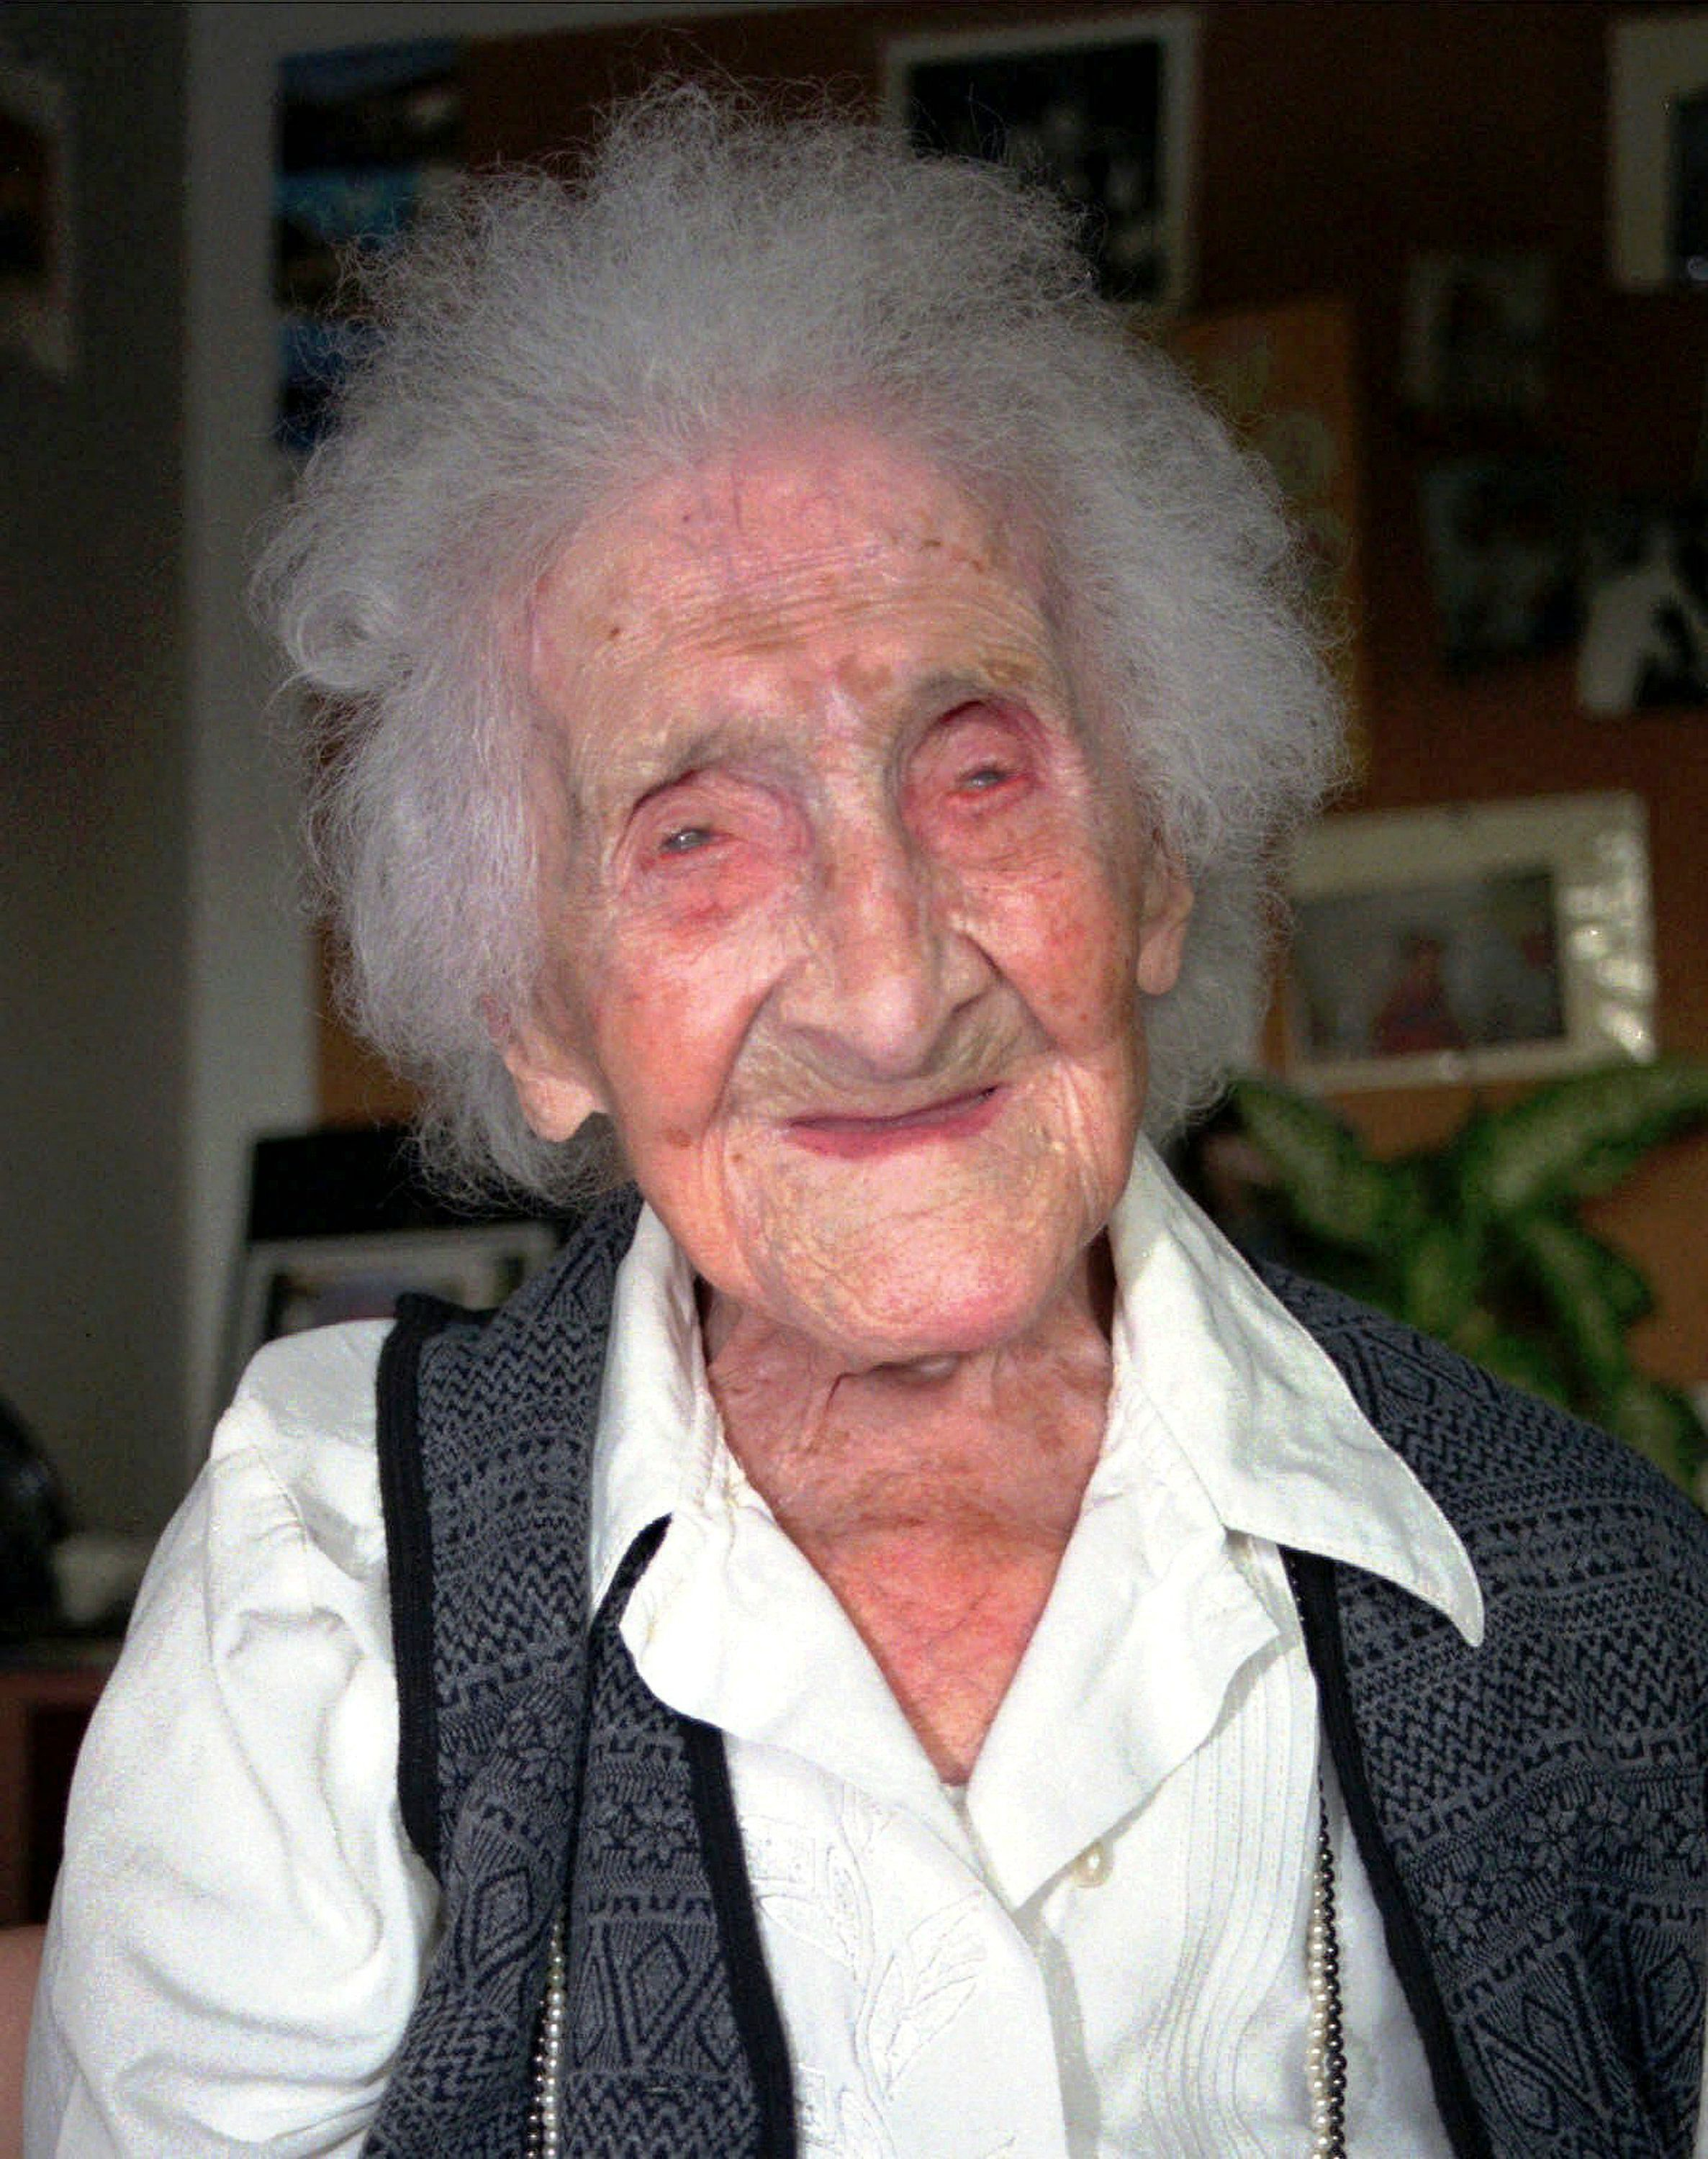 Jeanne Calment in Arles, France, in February 1996. Believed to be the world's oldest person, she died at the age of 122 in 19